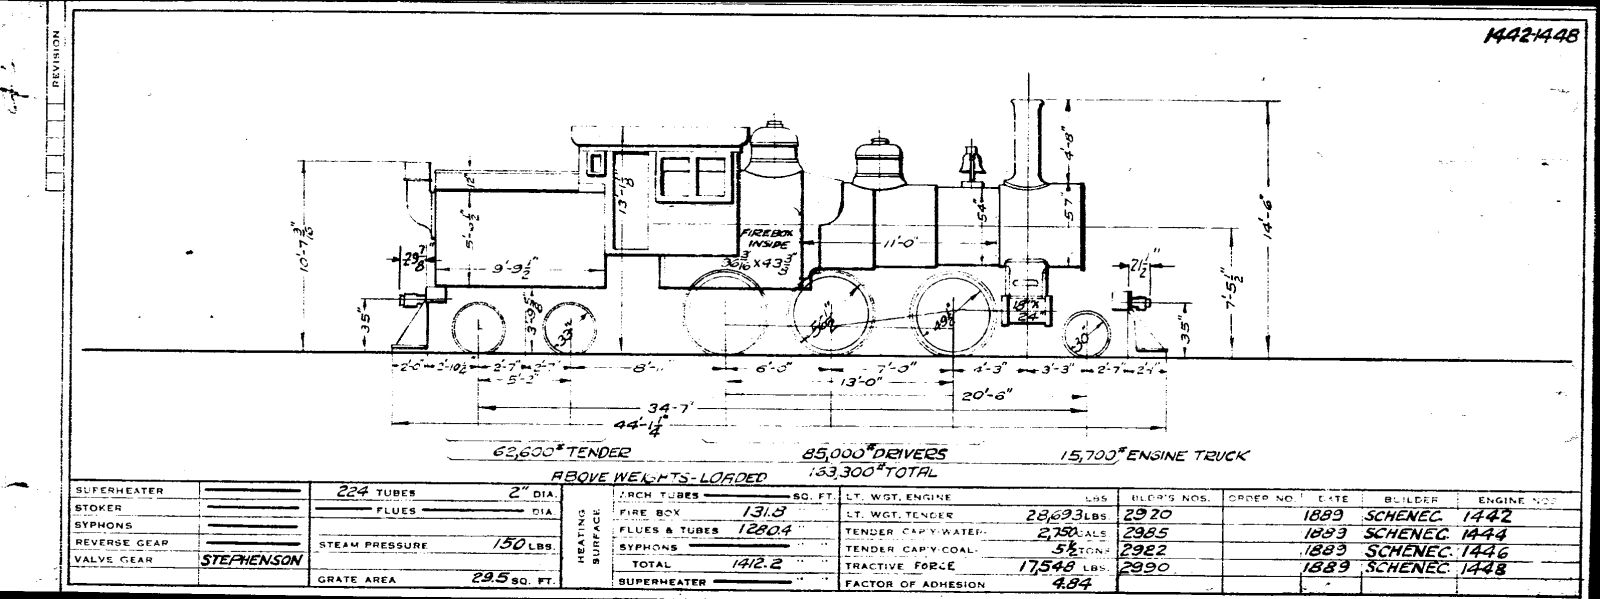 hight resolution of page 45 locomotives 1448 1451 1453 1455 1456 page 46 locomotive 1454 page 47 locomotive 1454 page 48 locomotives 1551 1599